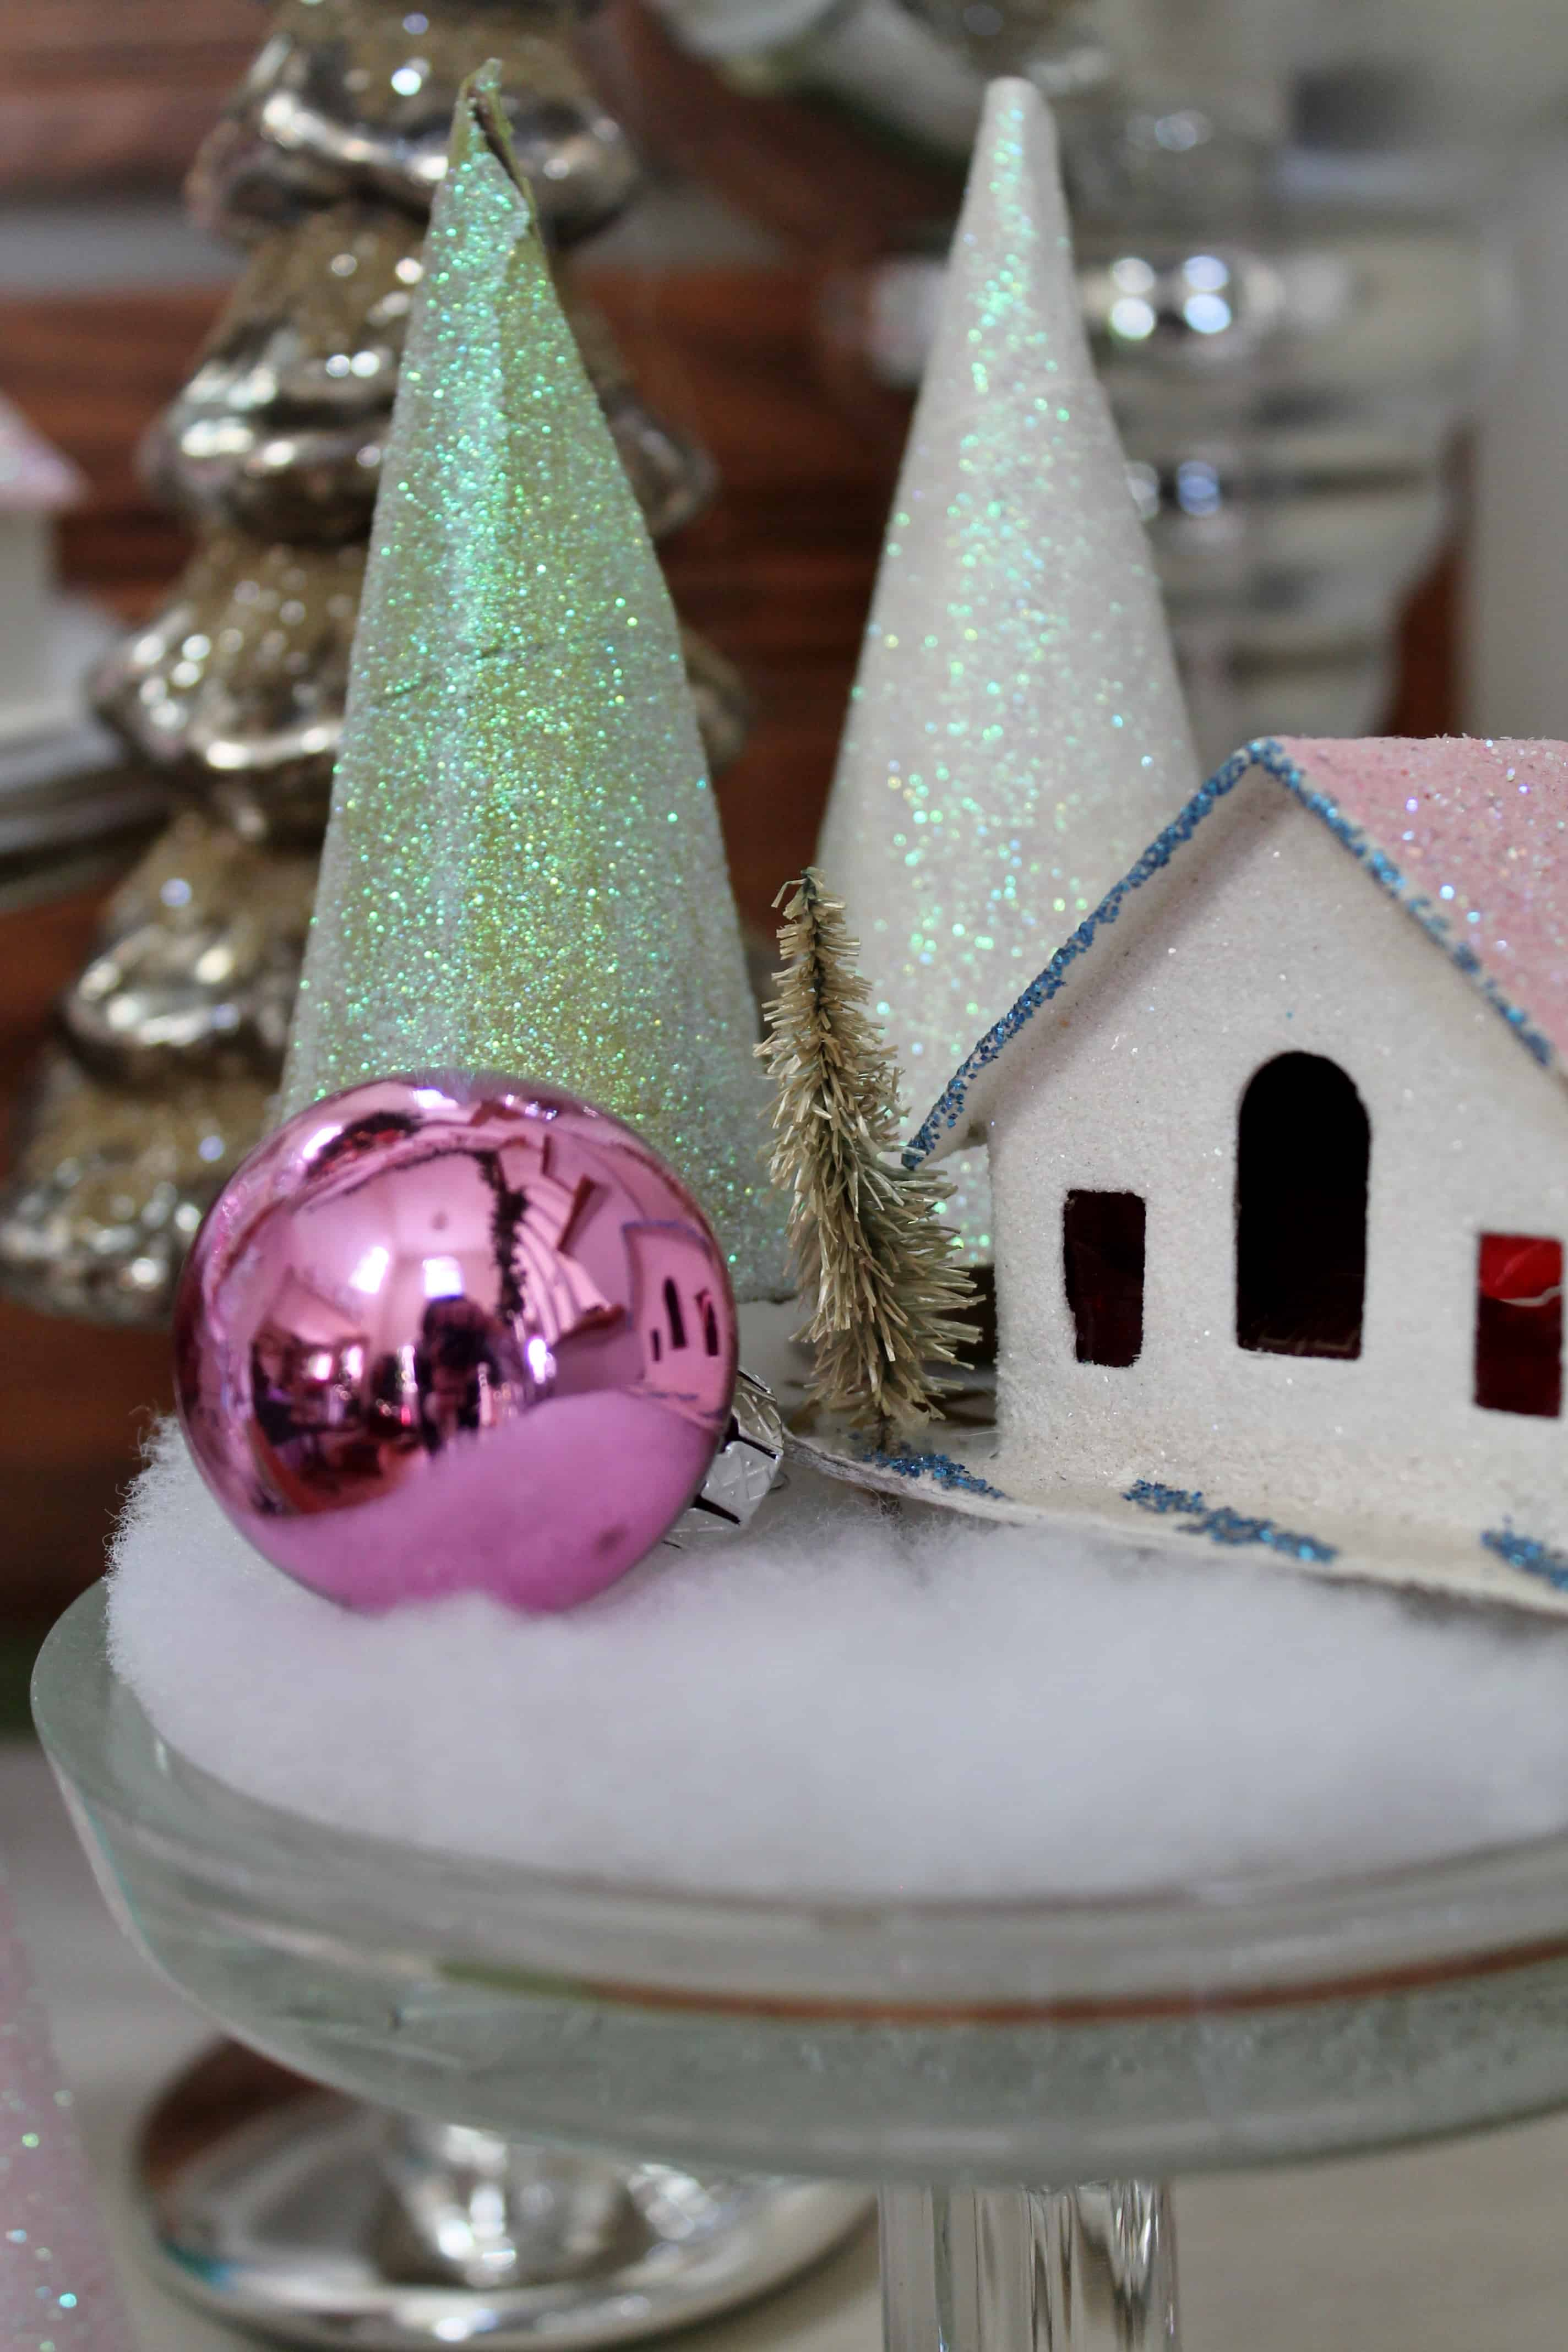 Glittery TP tube Christmas trees with vintage Putz house